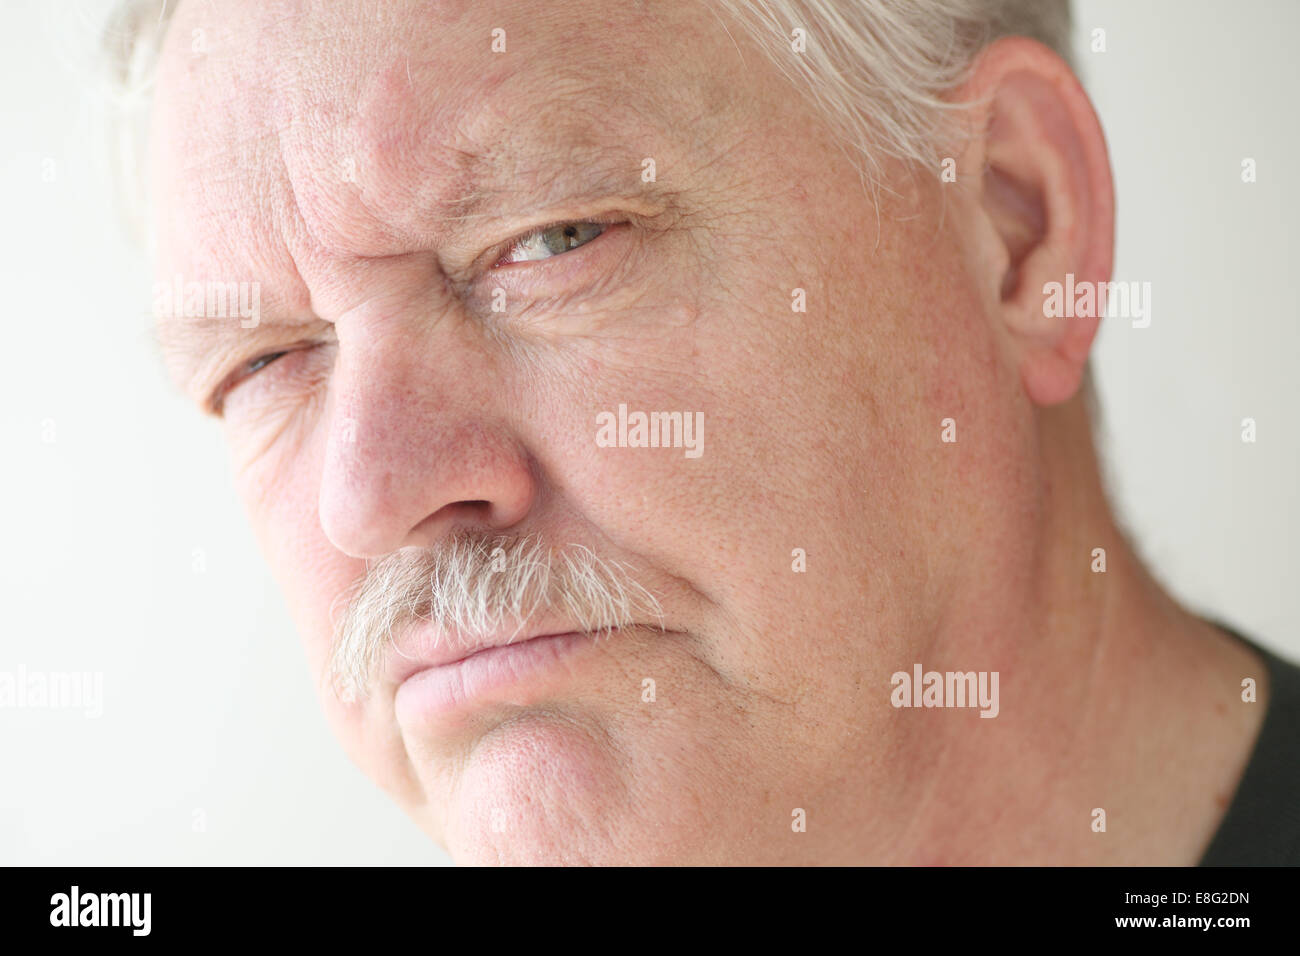 Senior man with a suspicious or skeptical expression - Stock Image